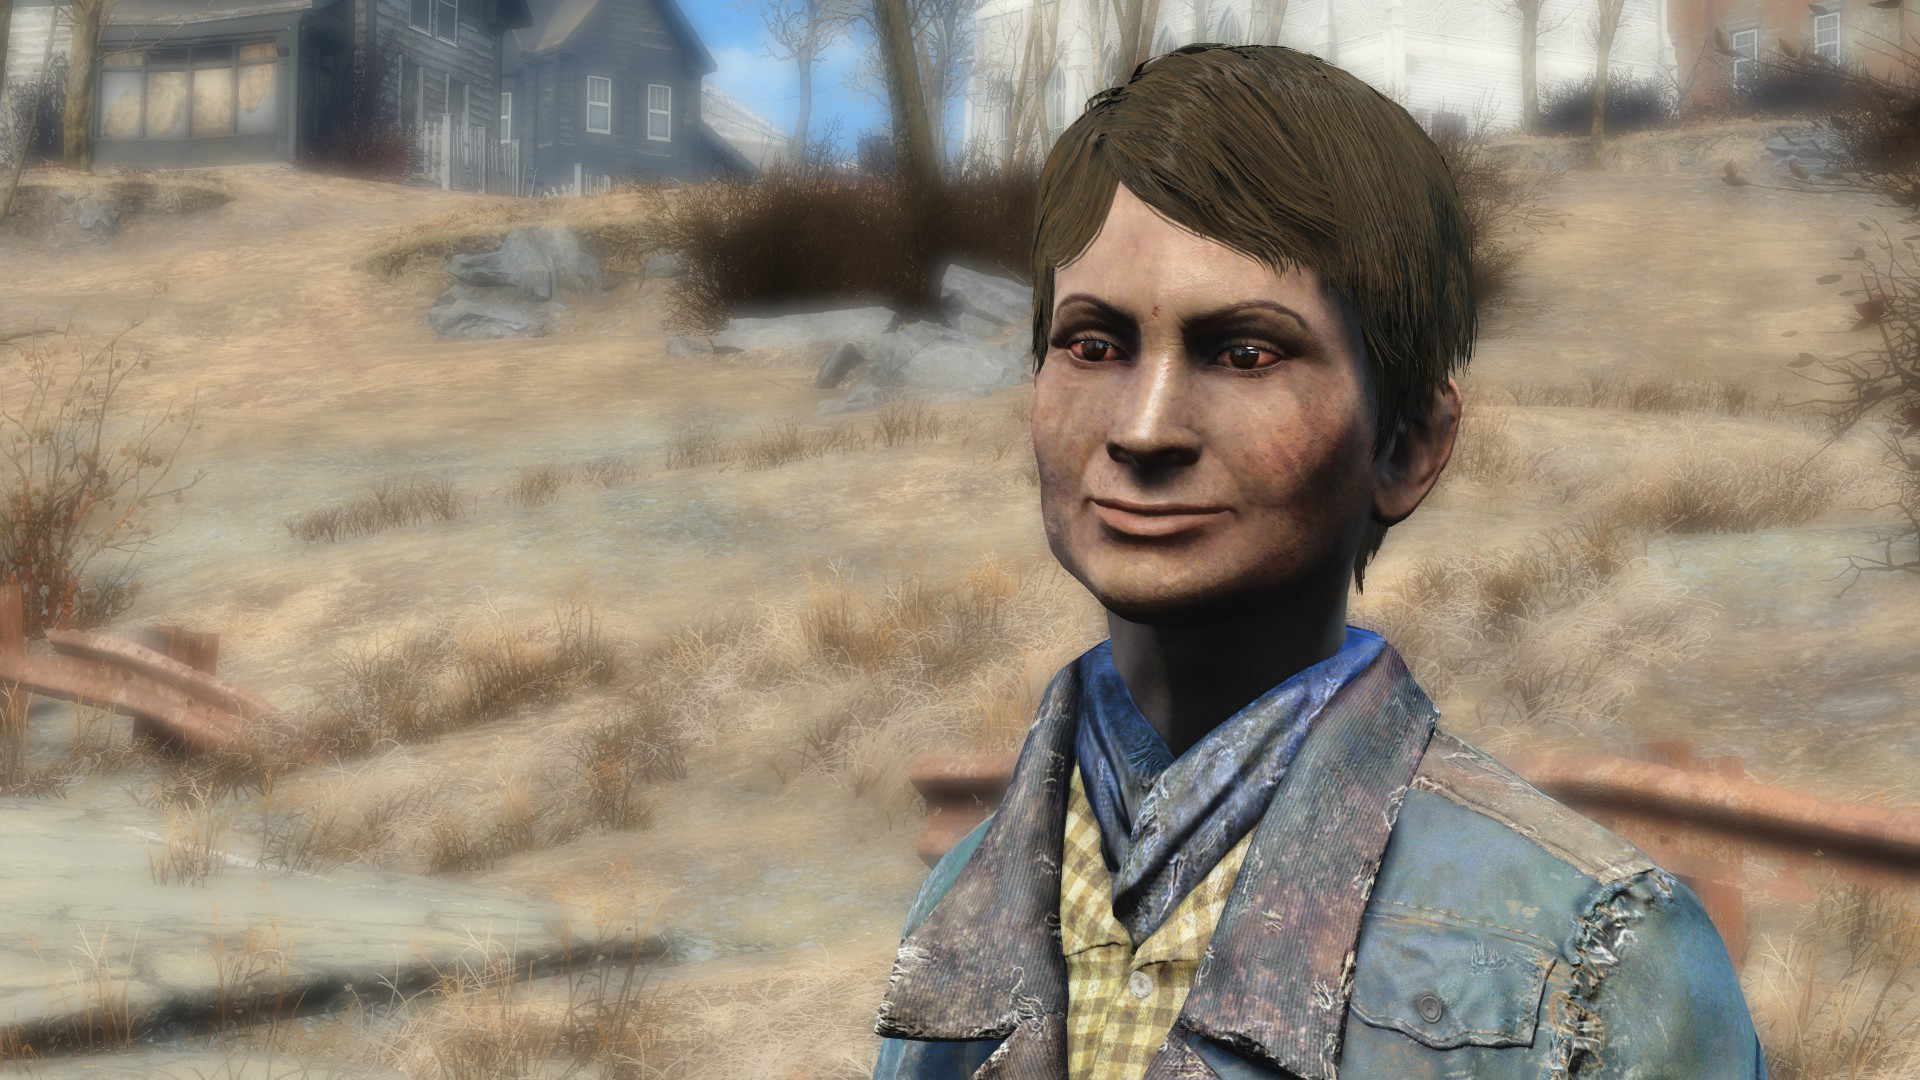 Trashcan Carla | Fallout Wiki | FANDOM powered by Wikia